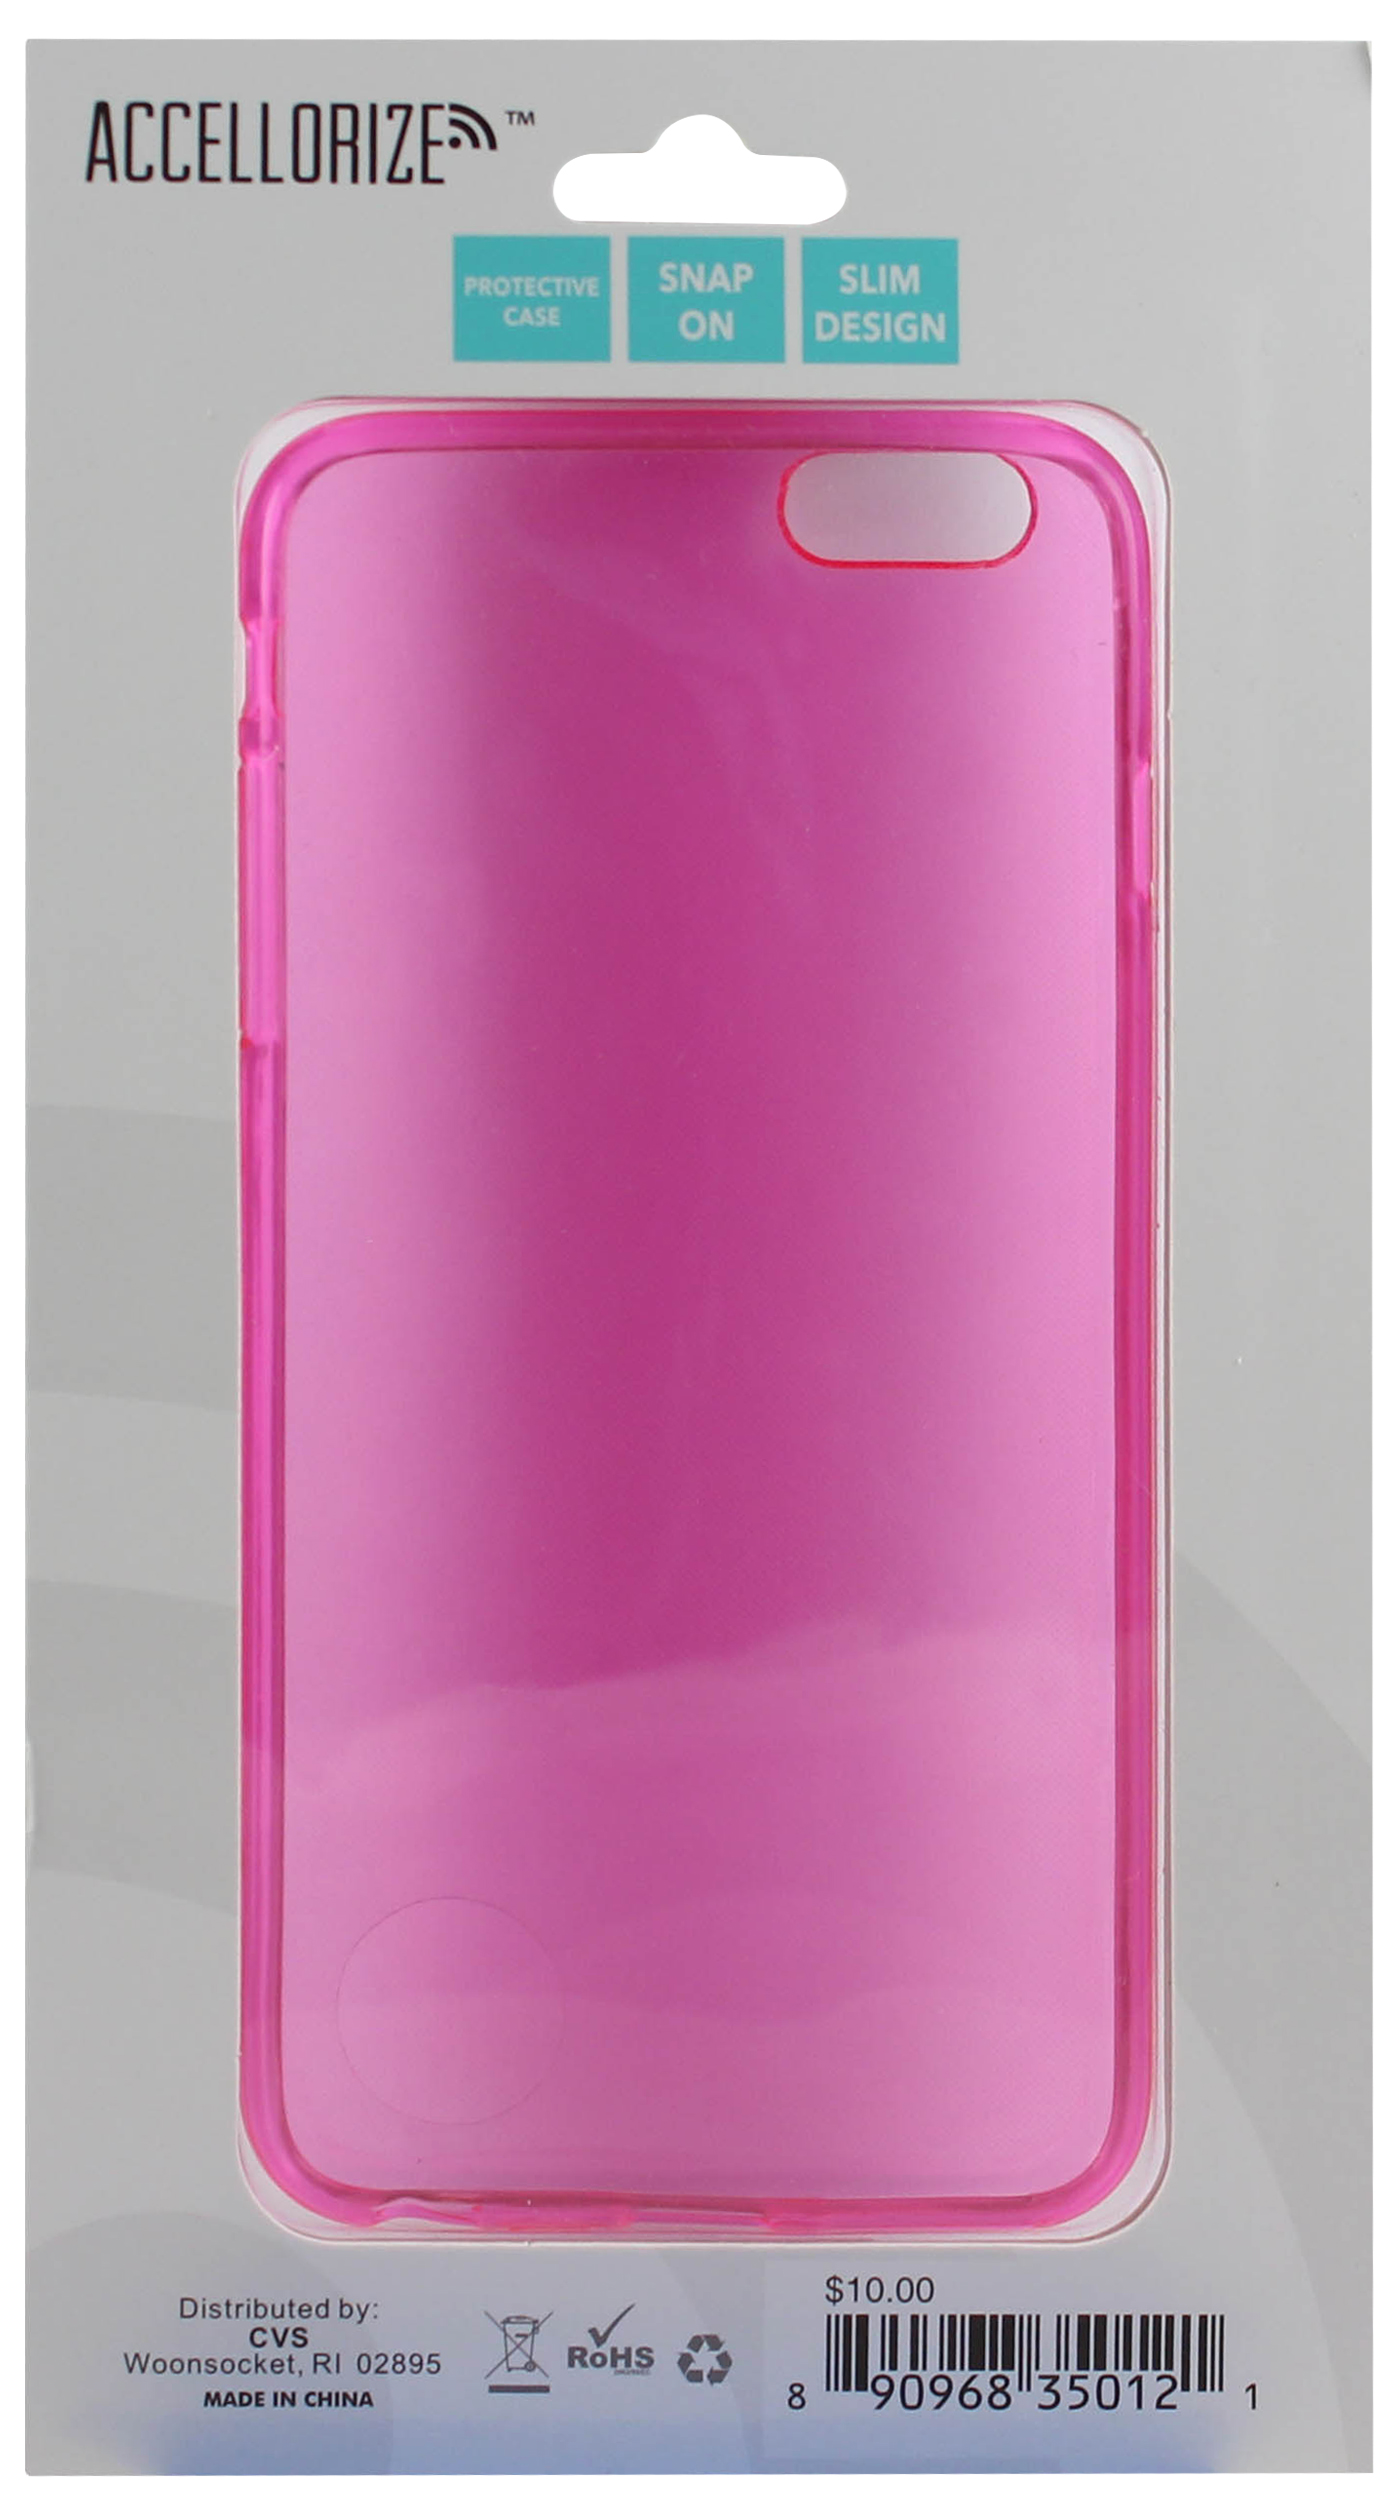 ACCELLORIZE 35012 PINK PROTECTIVE CASE FOR IPHONE 6 MADE OF